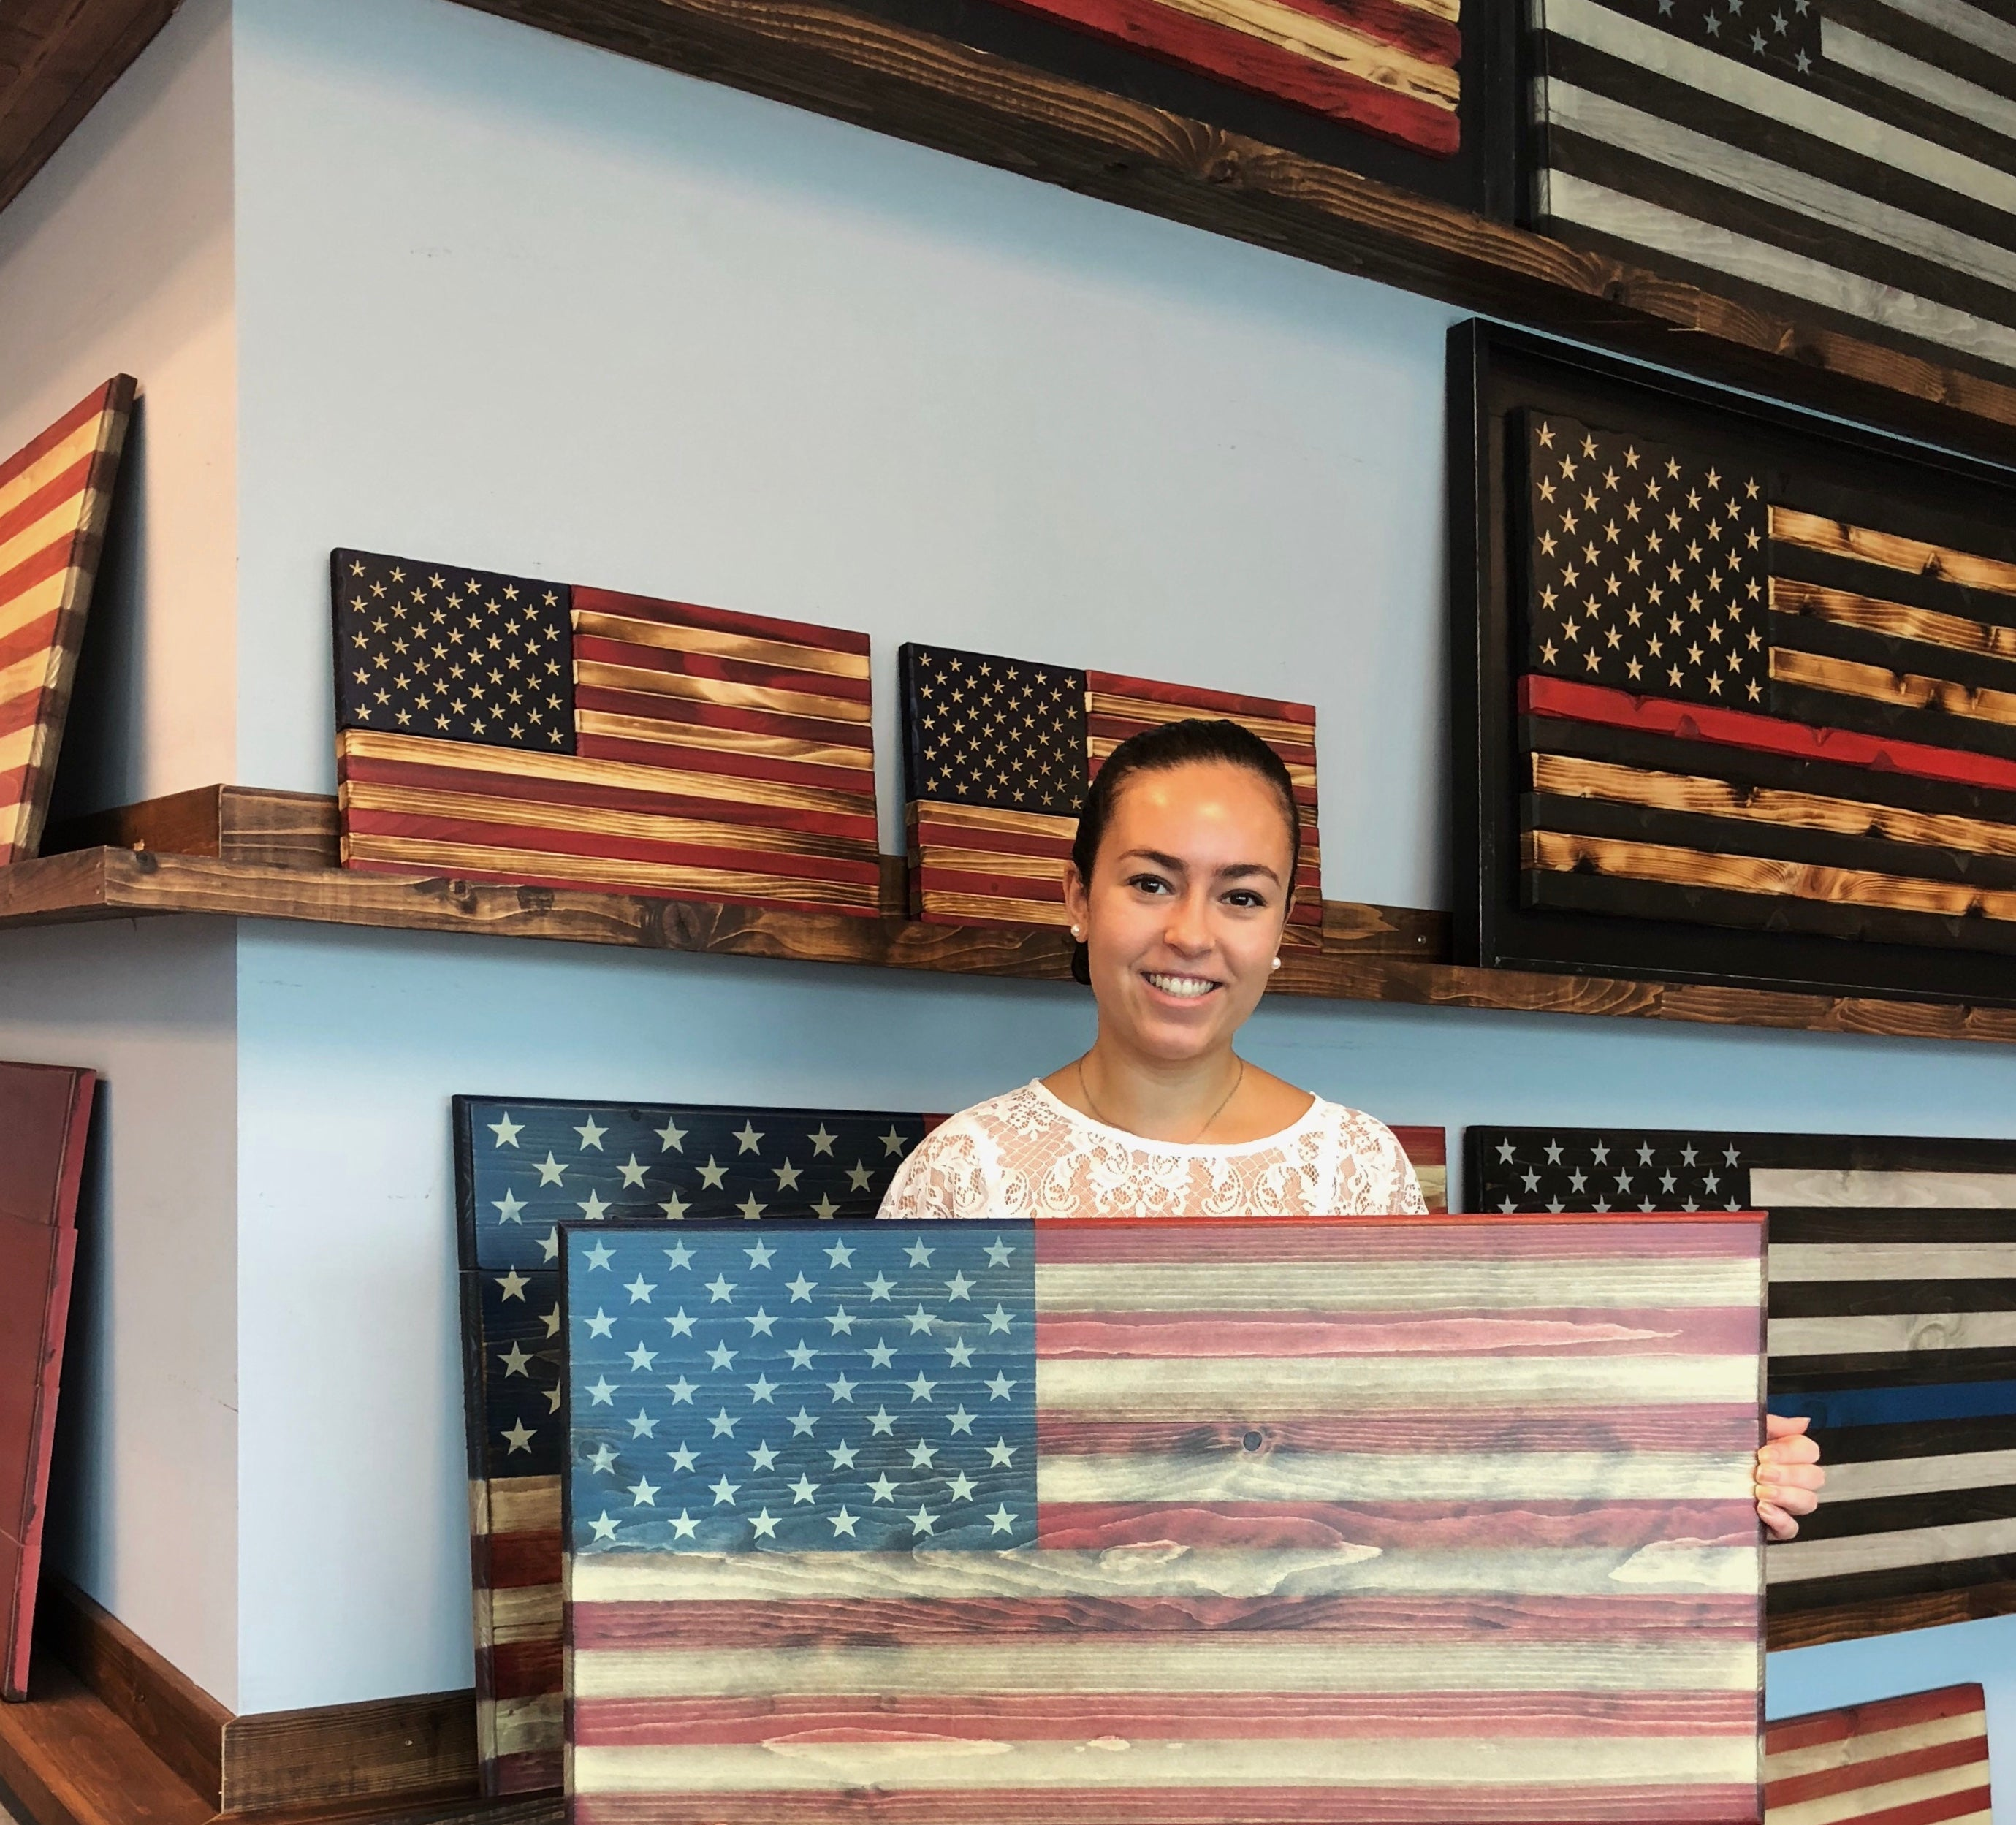 Azita Flags of Valor Marketing Strategist